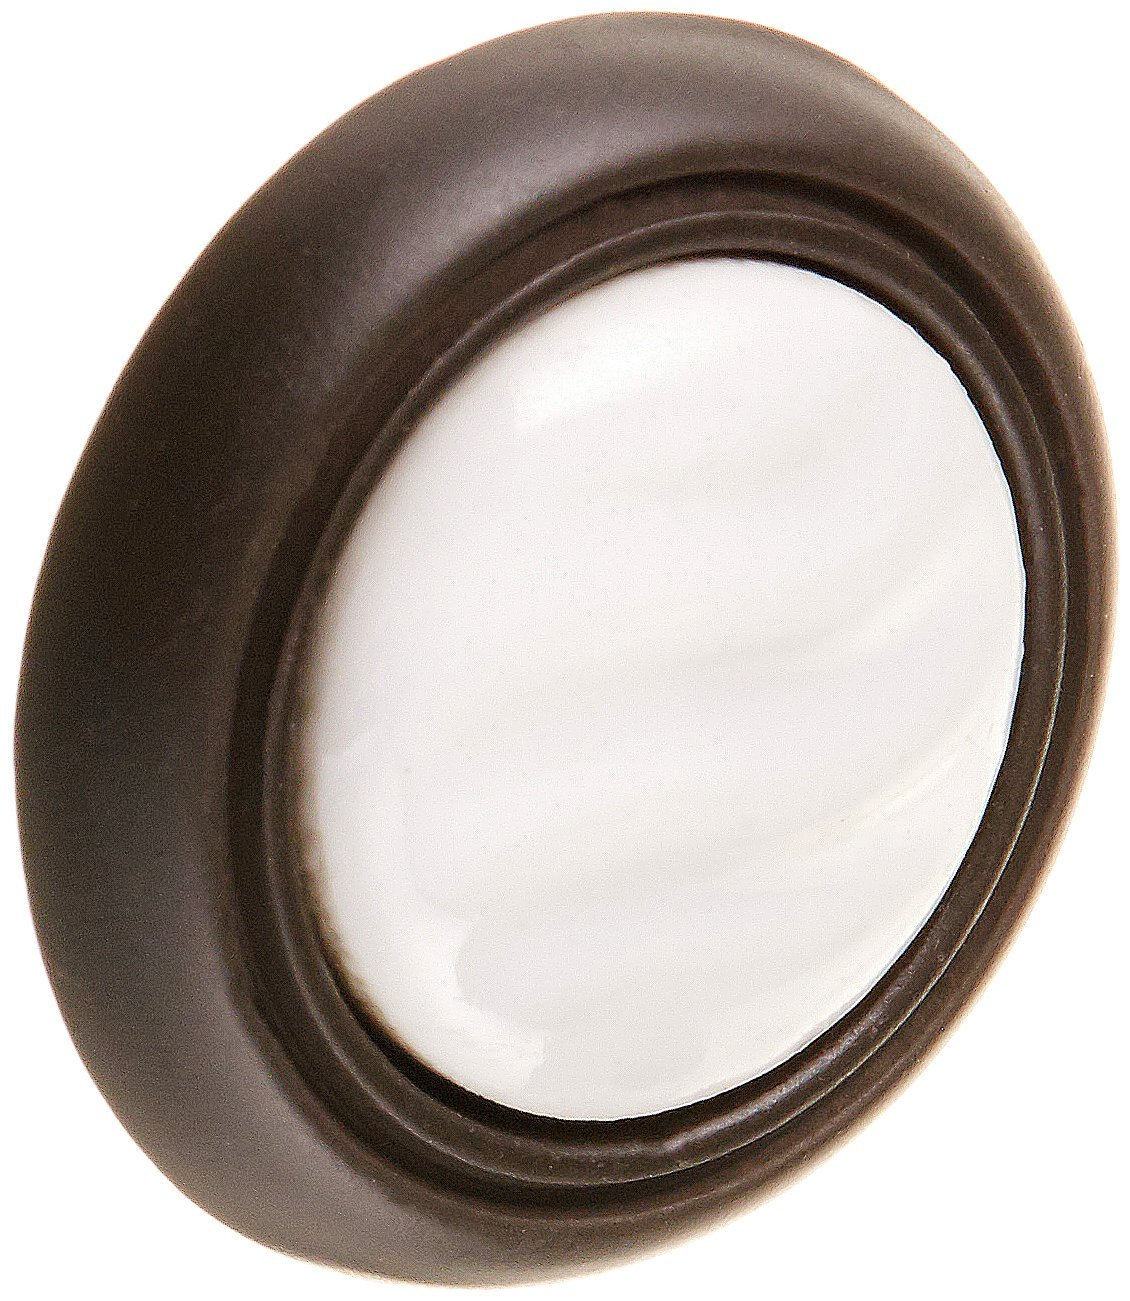 Laurey 15565 3-Inch First Family Pull Oil Rubbed Bronze with White Porcelain Insert